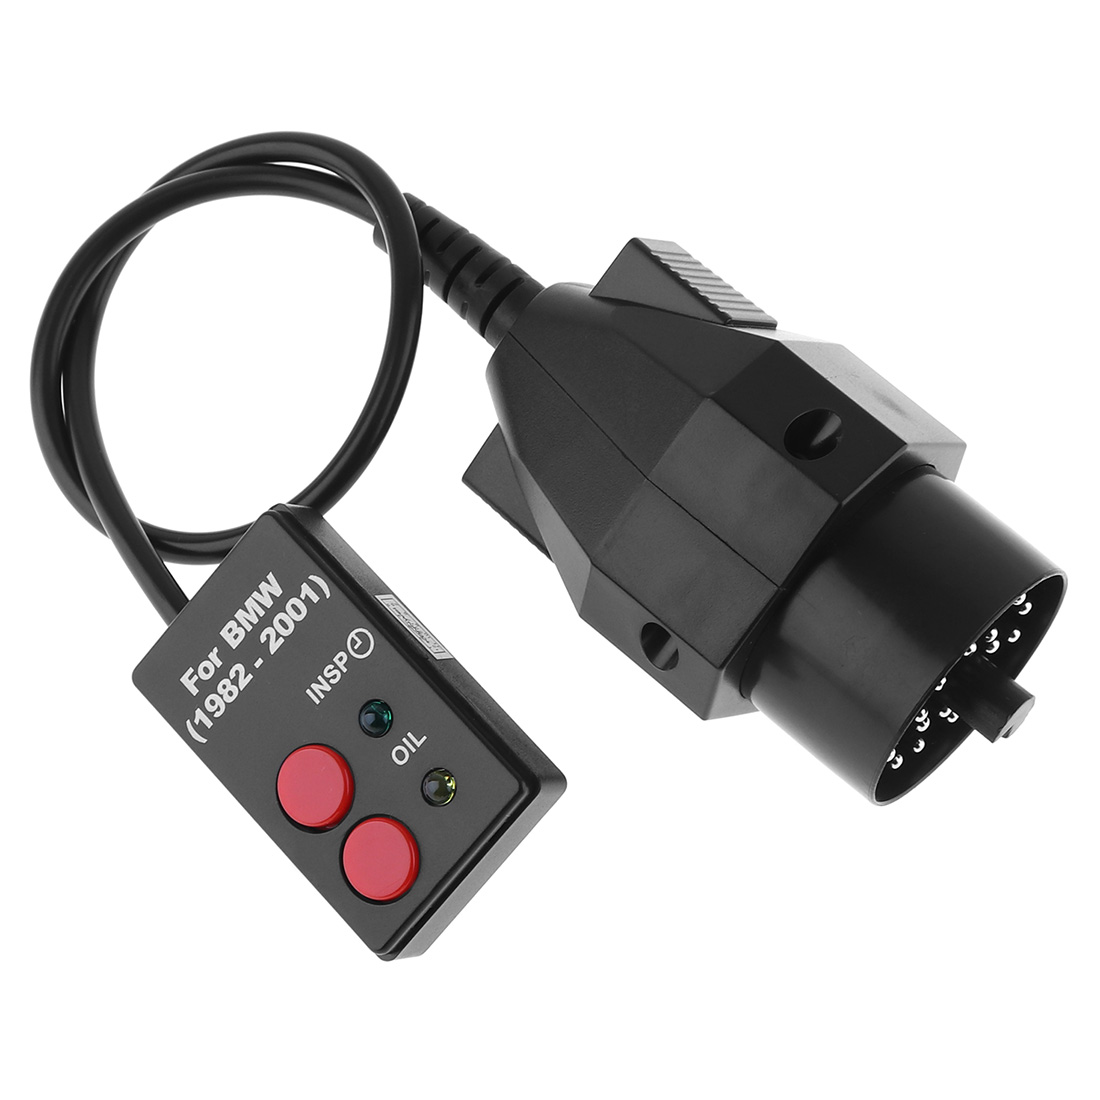 20 Pin 12V ABS Sockets Oil Service Reset Diagnostic Tool With Indicator Light For 1982-2001 BMW